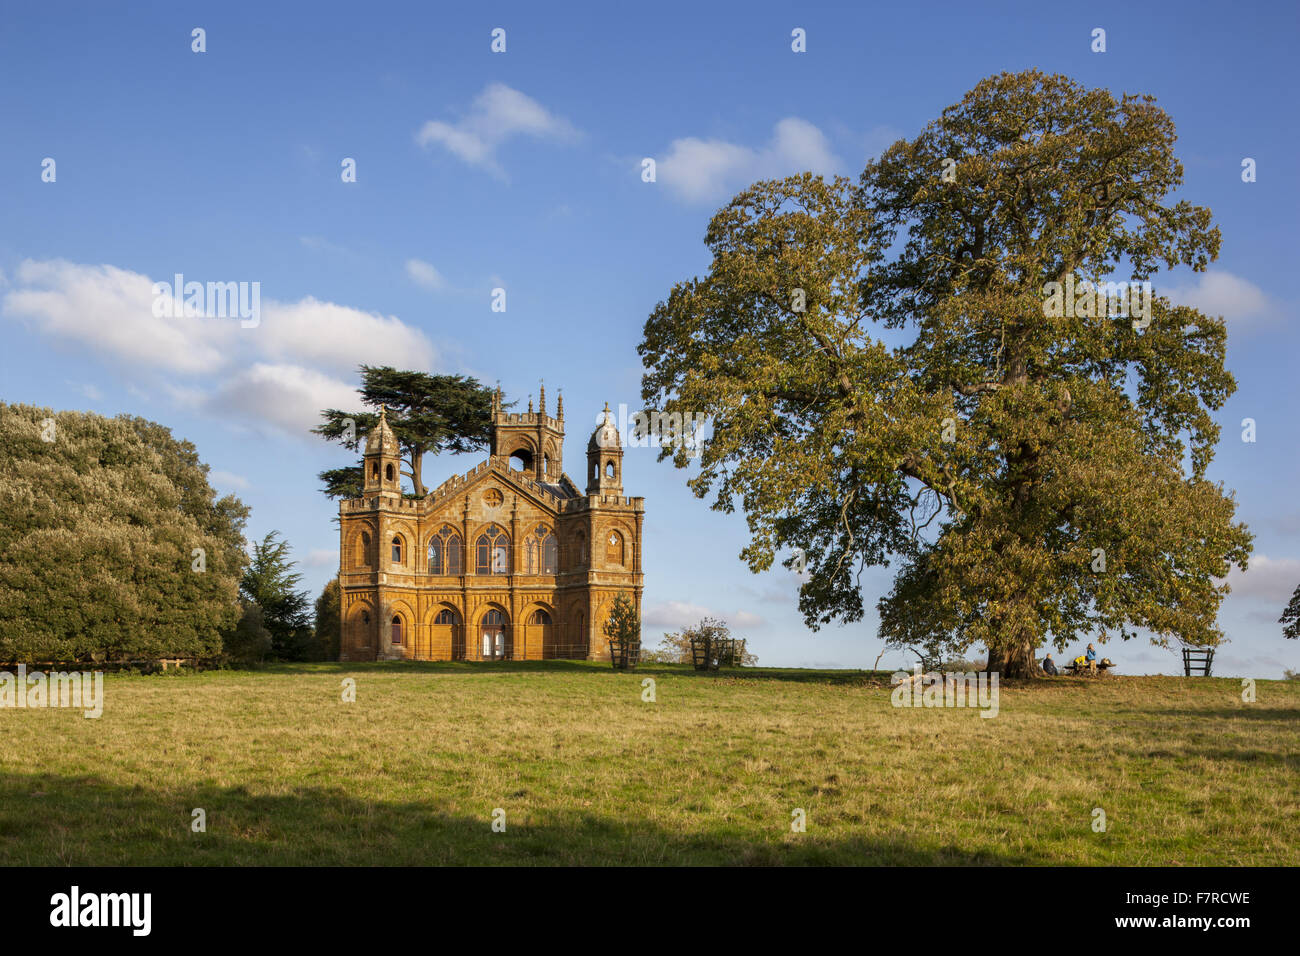 The Gothic Temple at Stowe, Buckinghamshire. Stowe is an 18th century landscaped garden, and includes more than - Stock Image